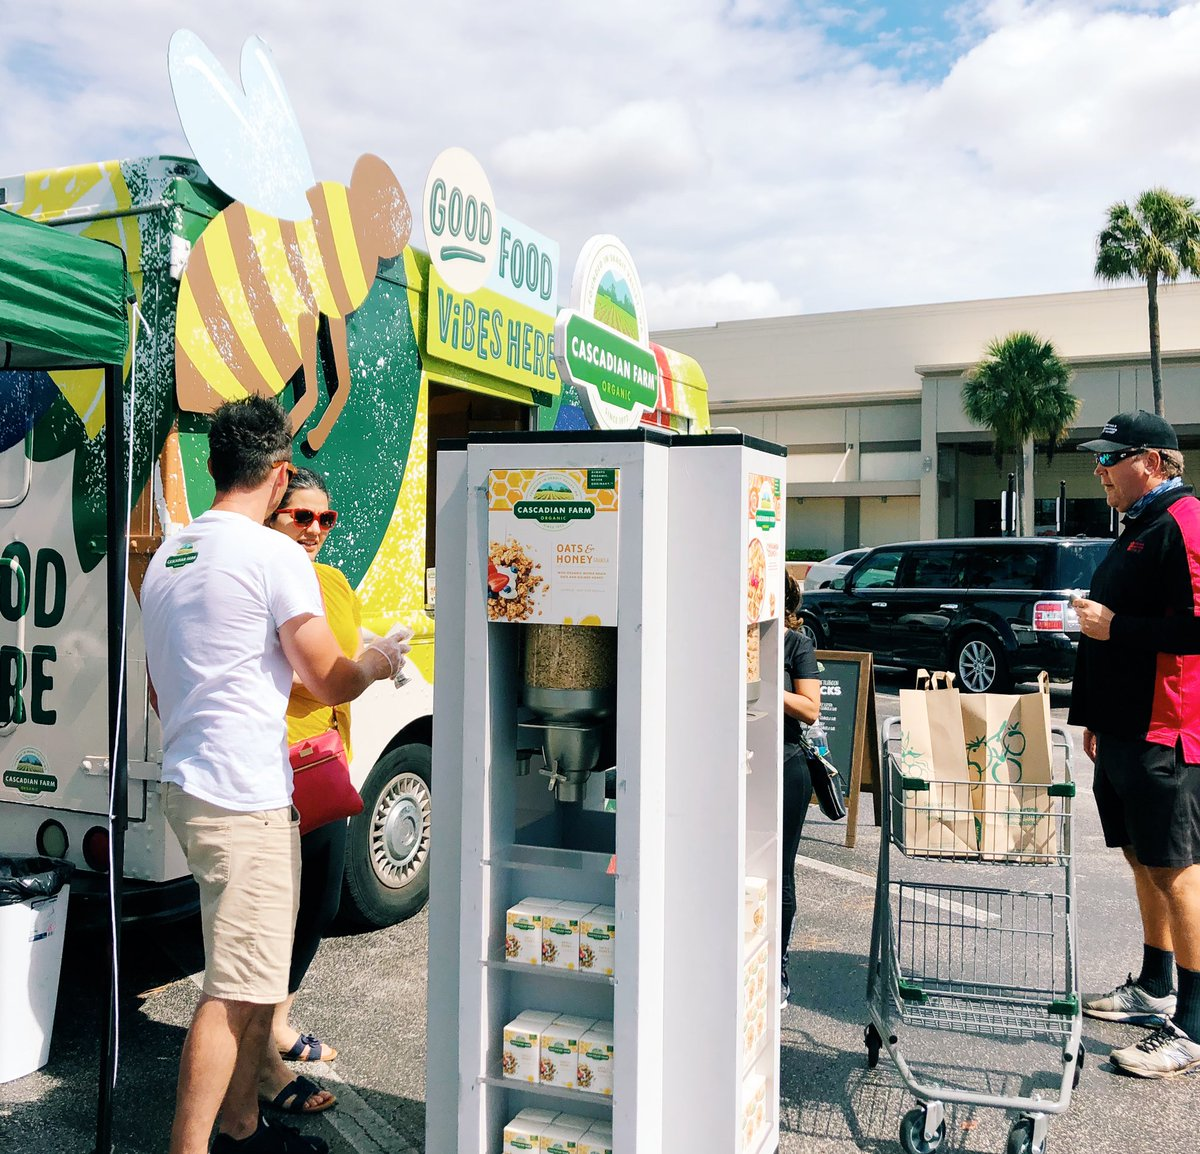 Find us @WholeFoods Clearwater today until 4PM! Fill a to-go box at our custom cereal tower & try samples of our new #organic goodies. 😋 #GoodFoodVibesTampa #Tampa #wholefoods #cascadianfarm https://t.co/4QPsYyh38k